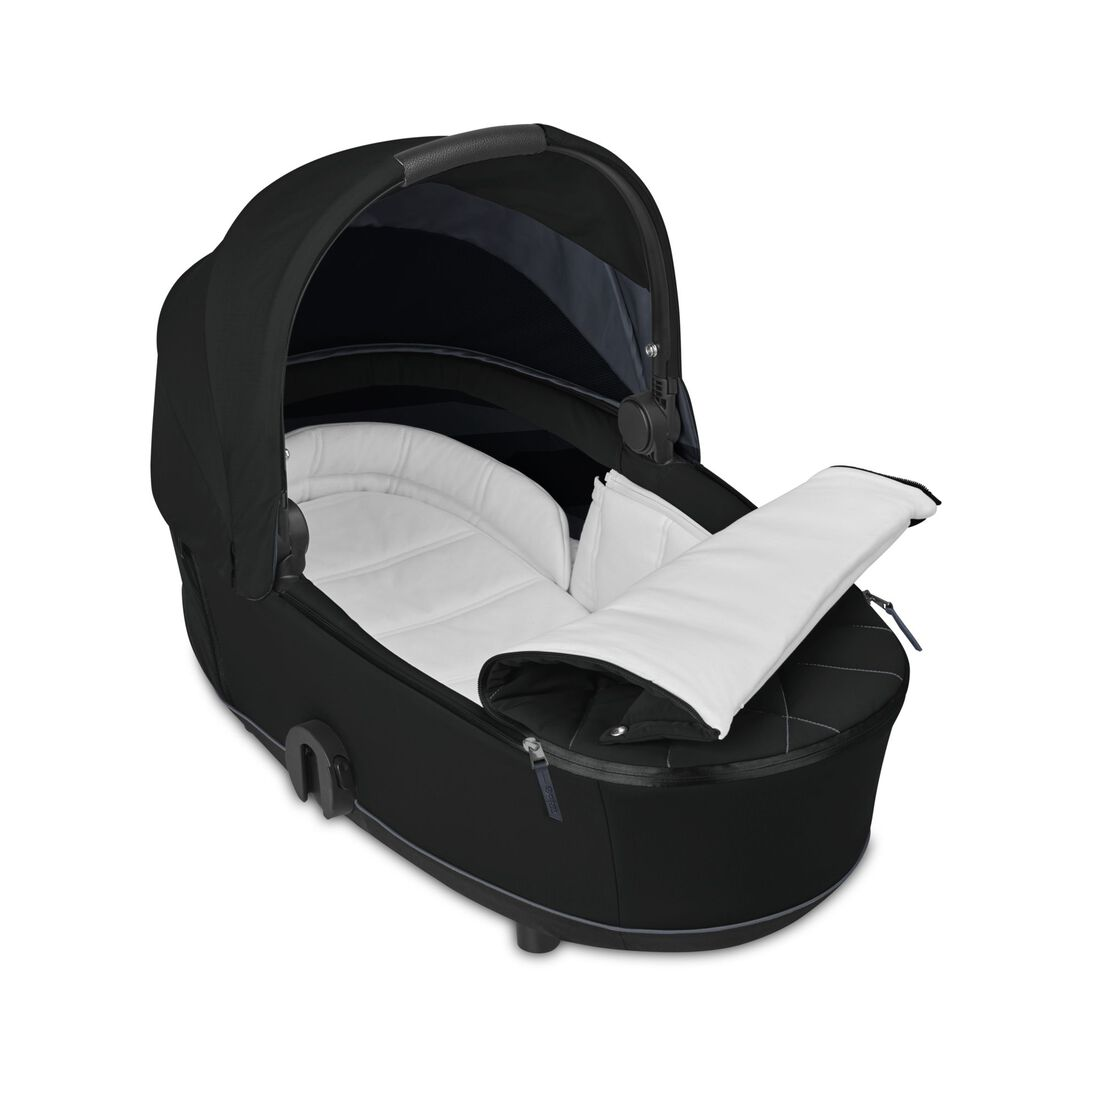 CYBEX Mios Lux Carry Cot - Deep Black in Deep Black large Bild 2